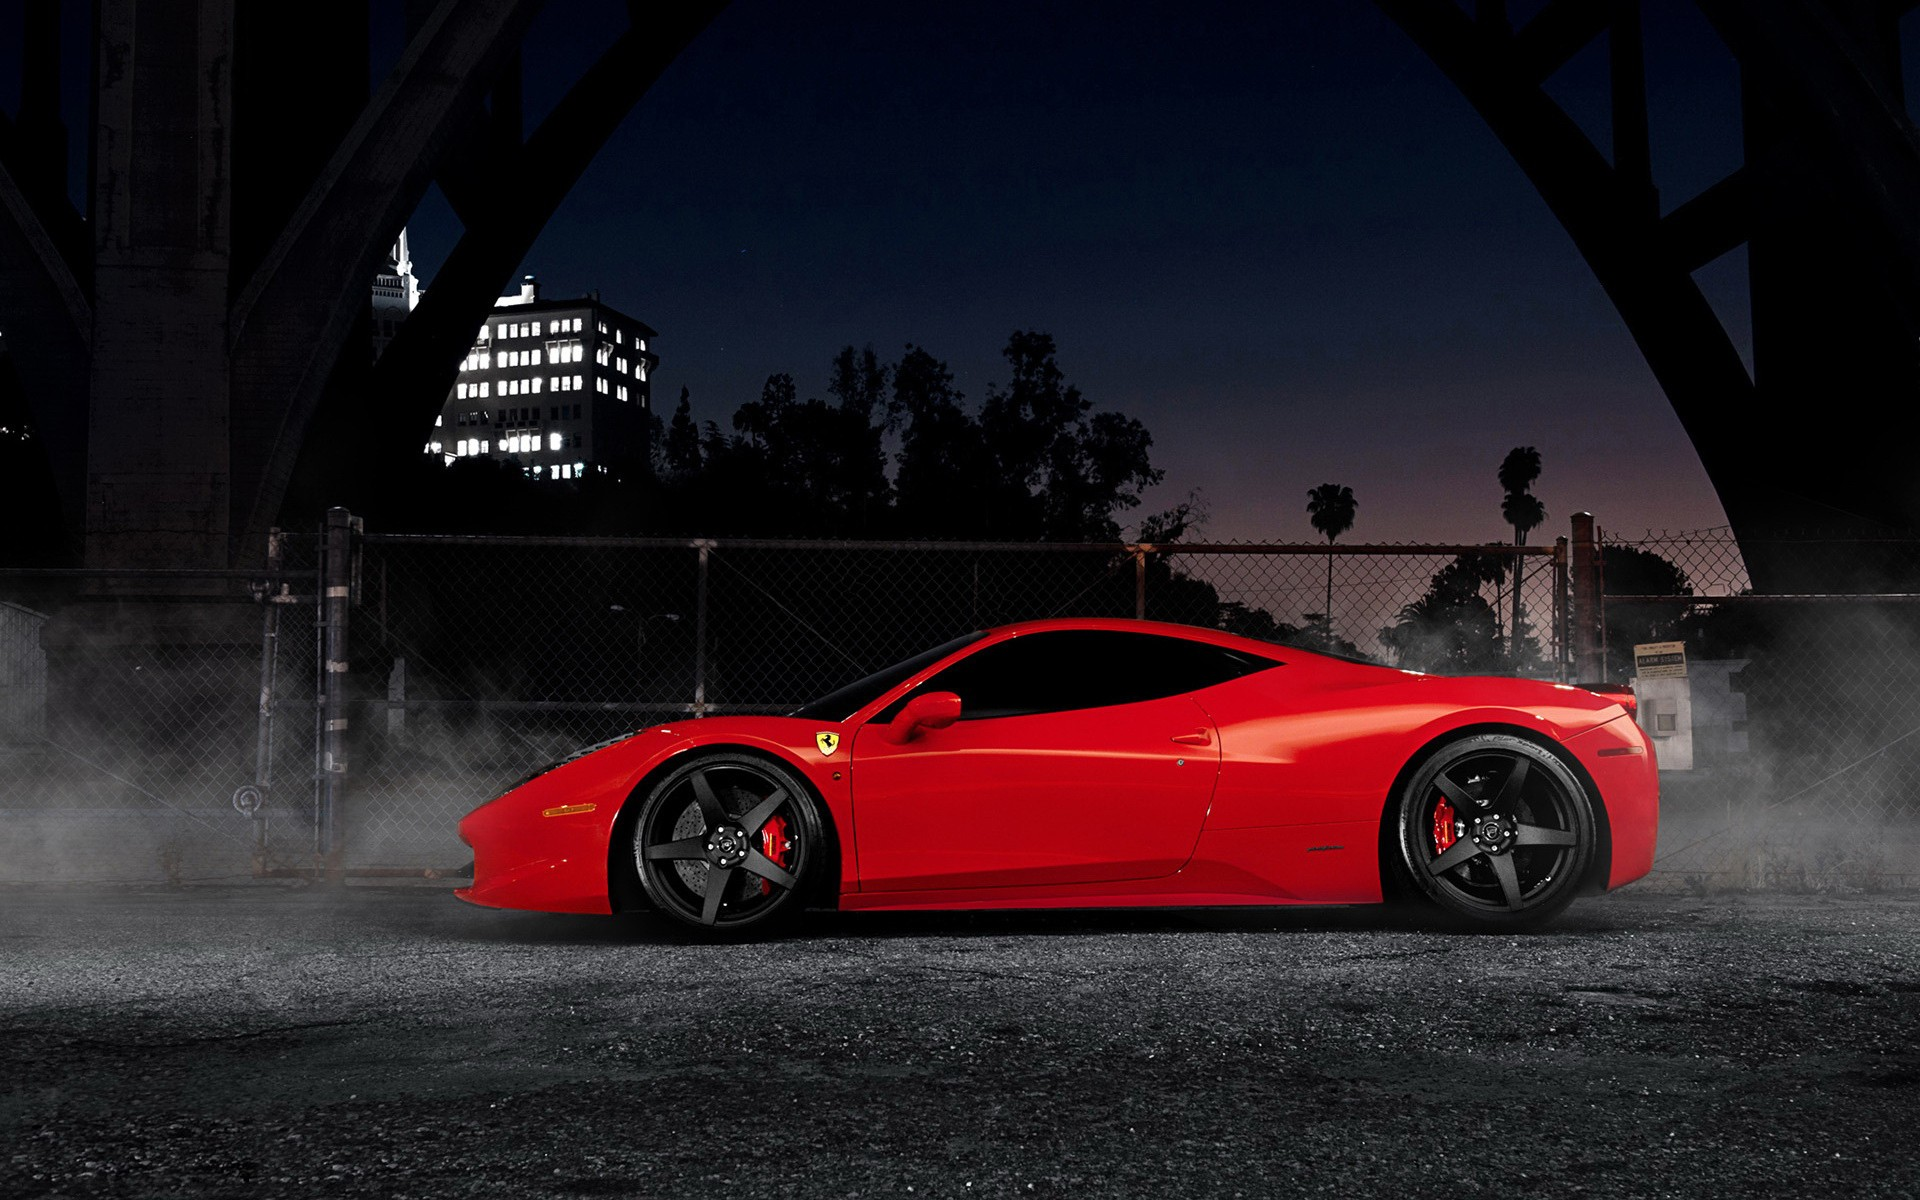 Forgestar Ferrari 458 Italia Wallpaper